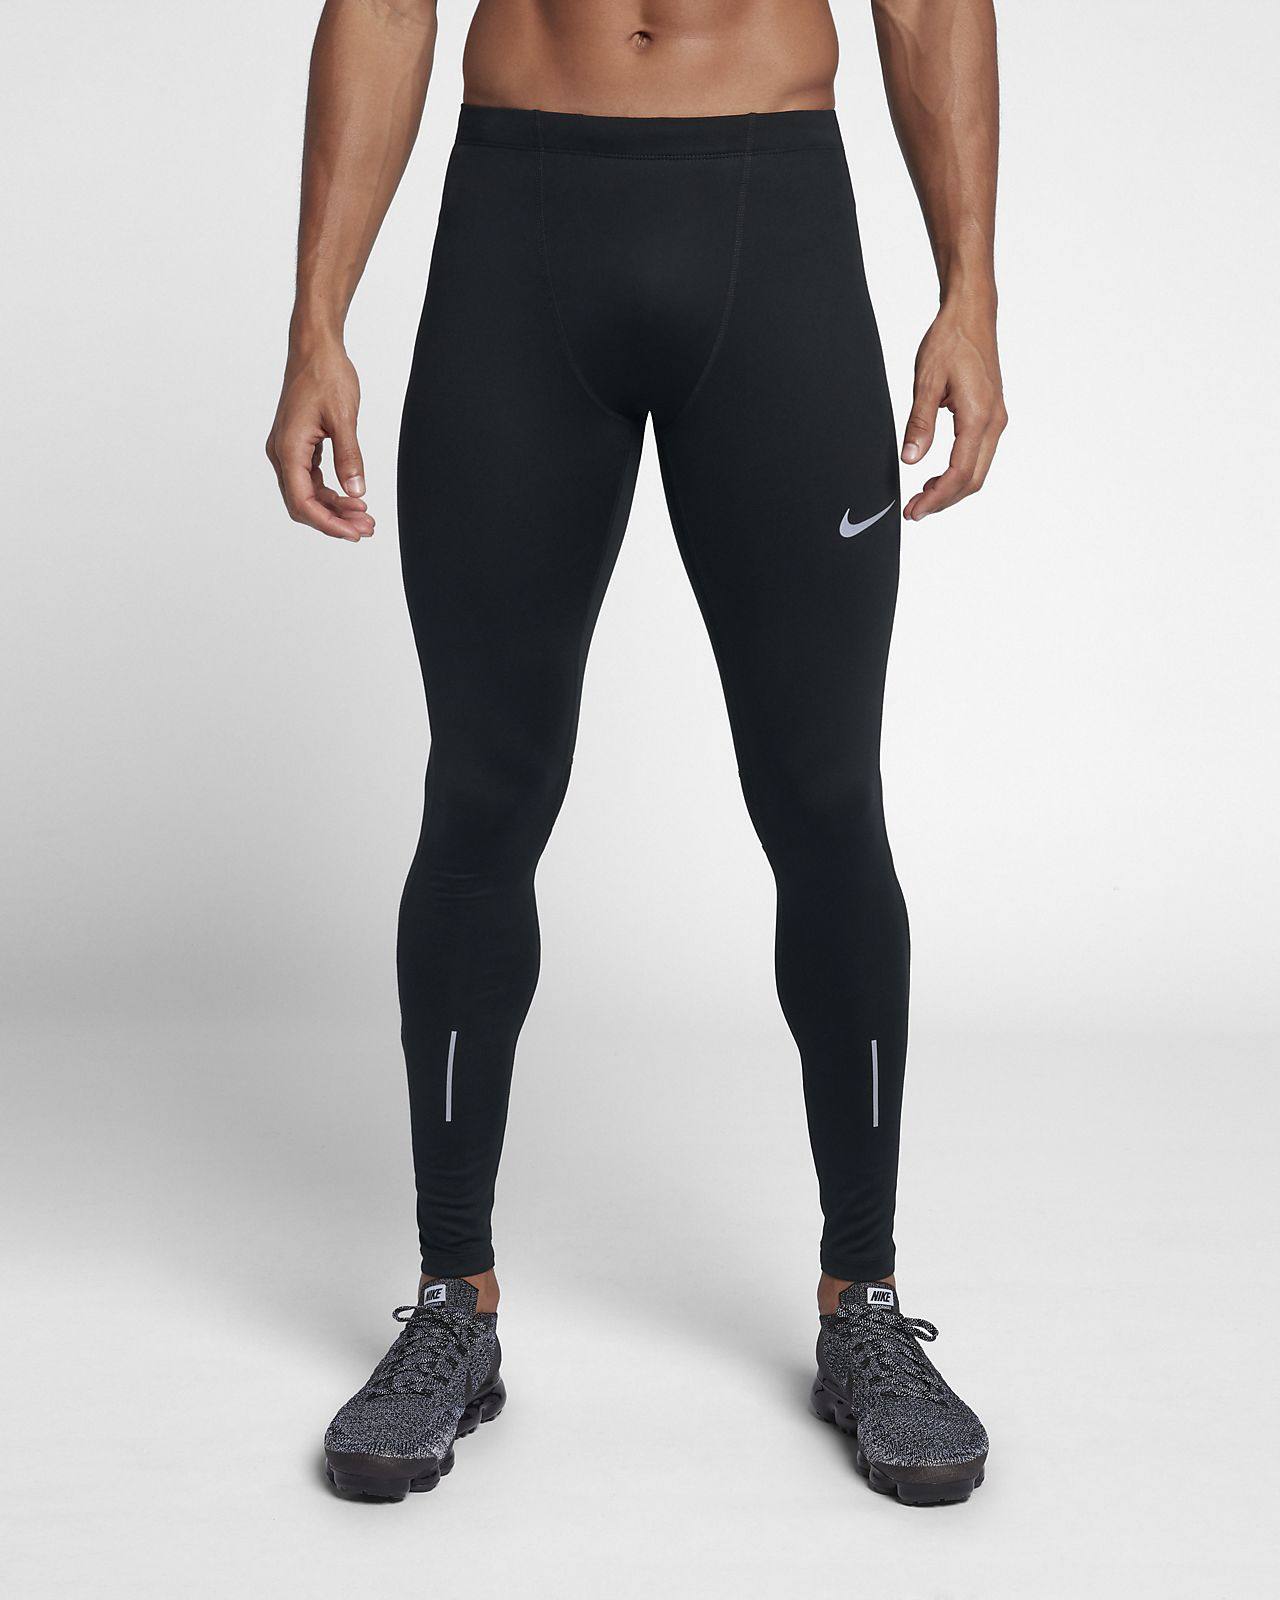 Nike Run Herren-Lauf-Tights (ca. 72,5 cm)